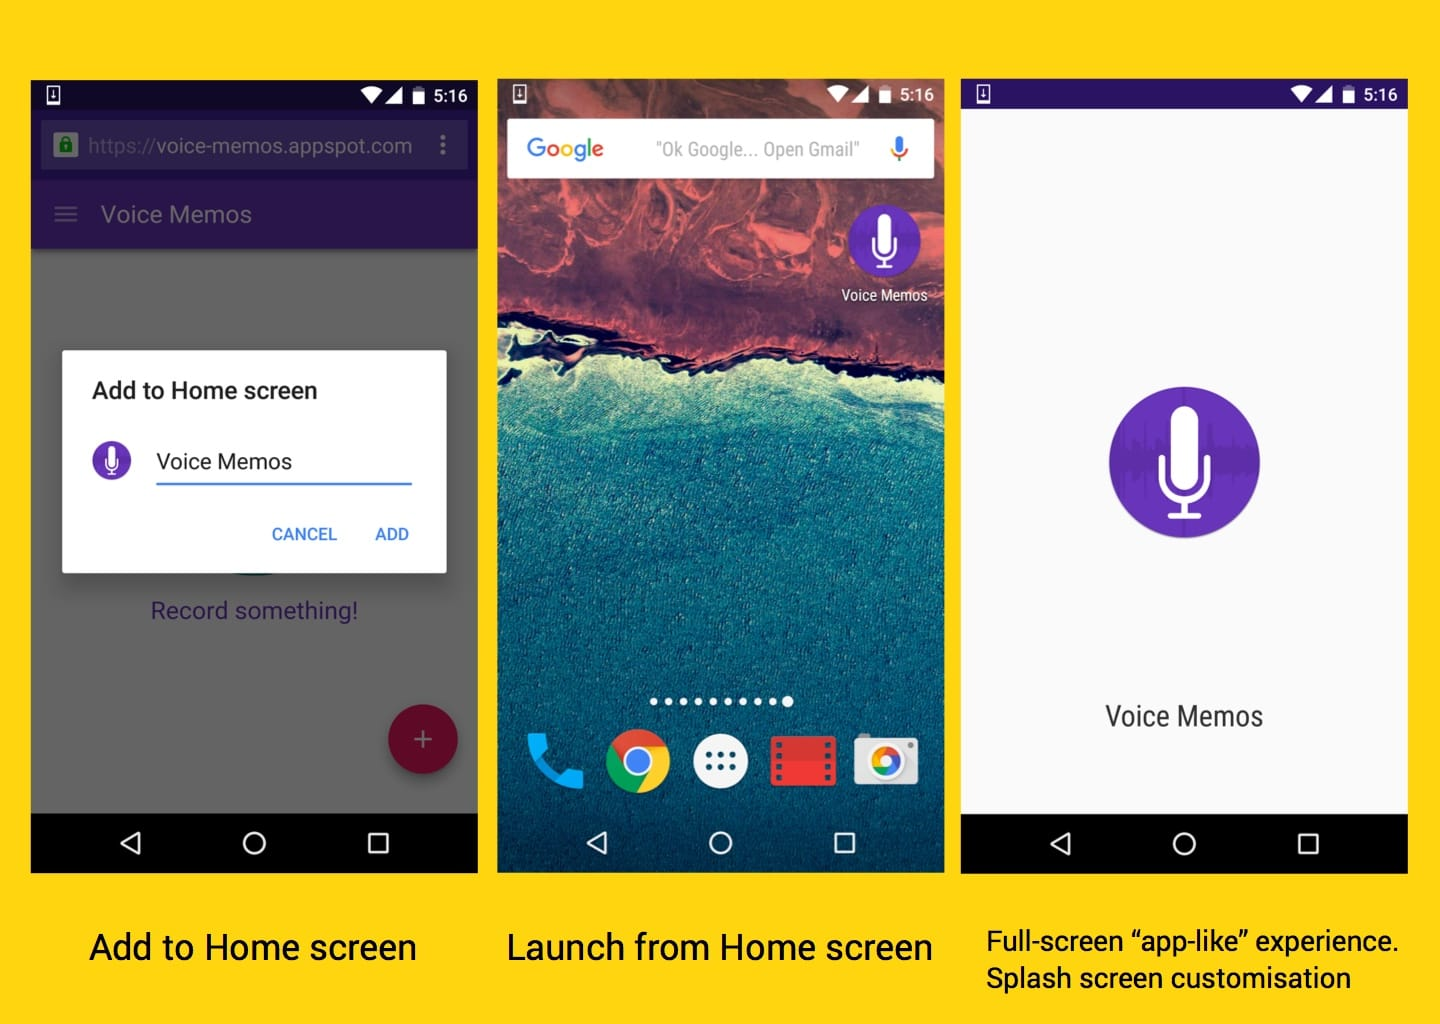 Add to home screen, launch from home screen and full-screen app-like experiences.